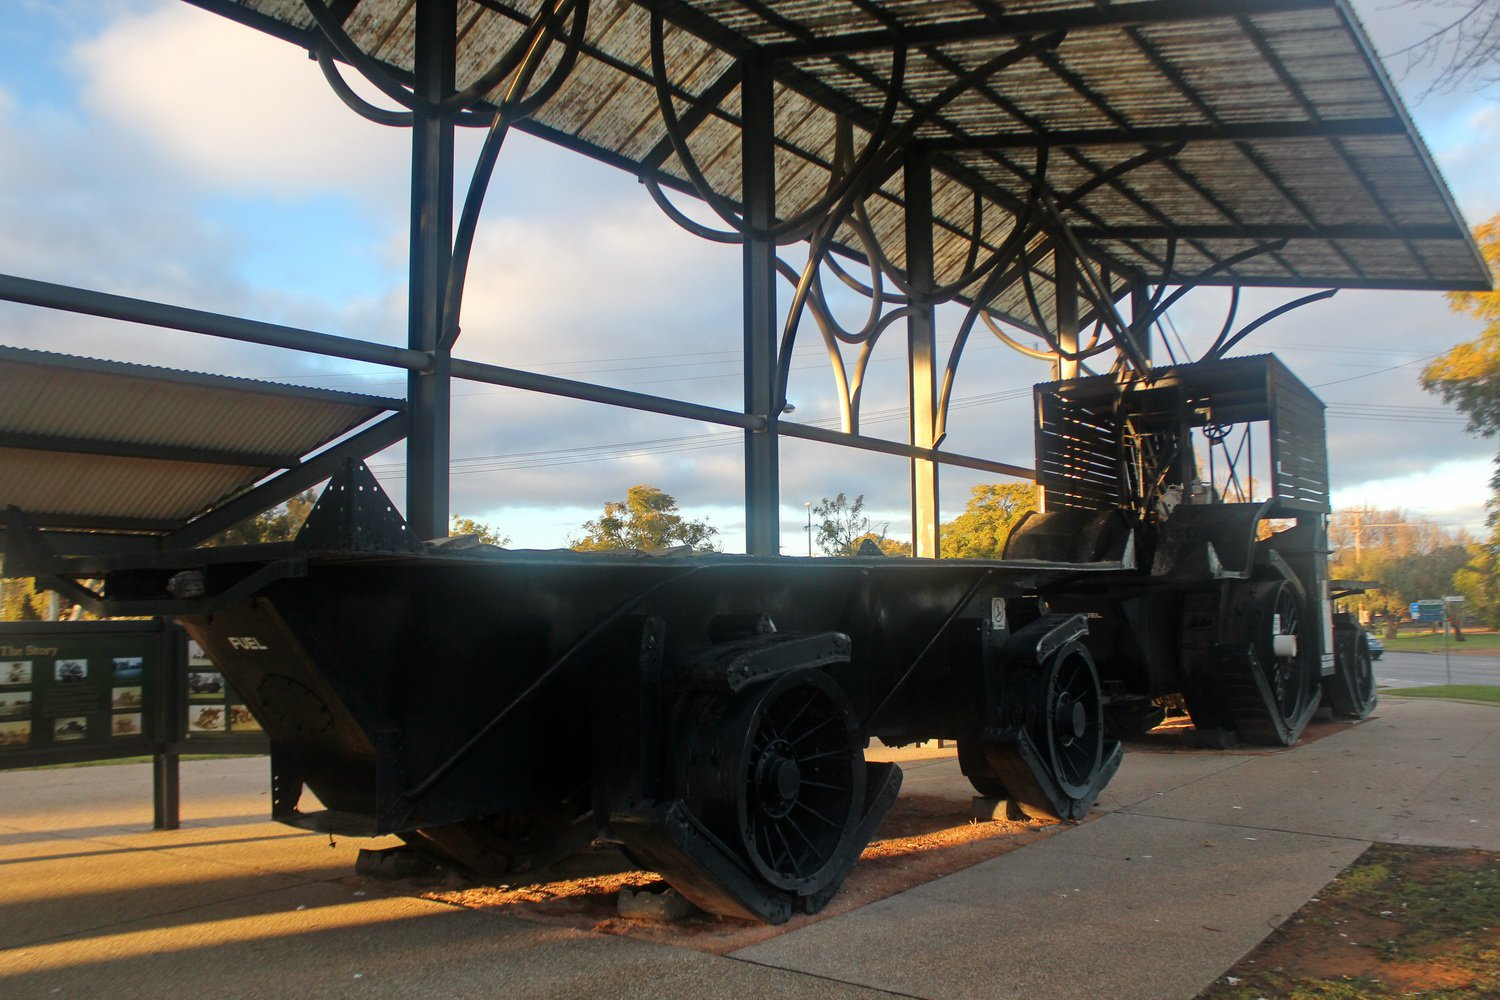 Big Lizzie, a 1915 heavy haulage machine and trailer. North West Victoria Tour, July 2020.